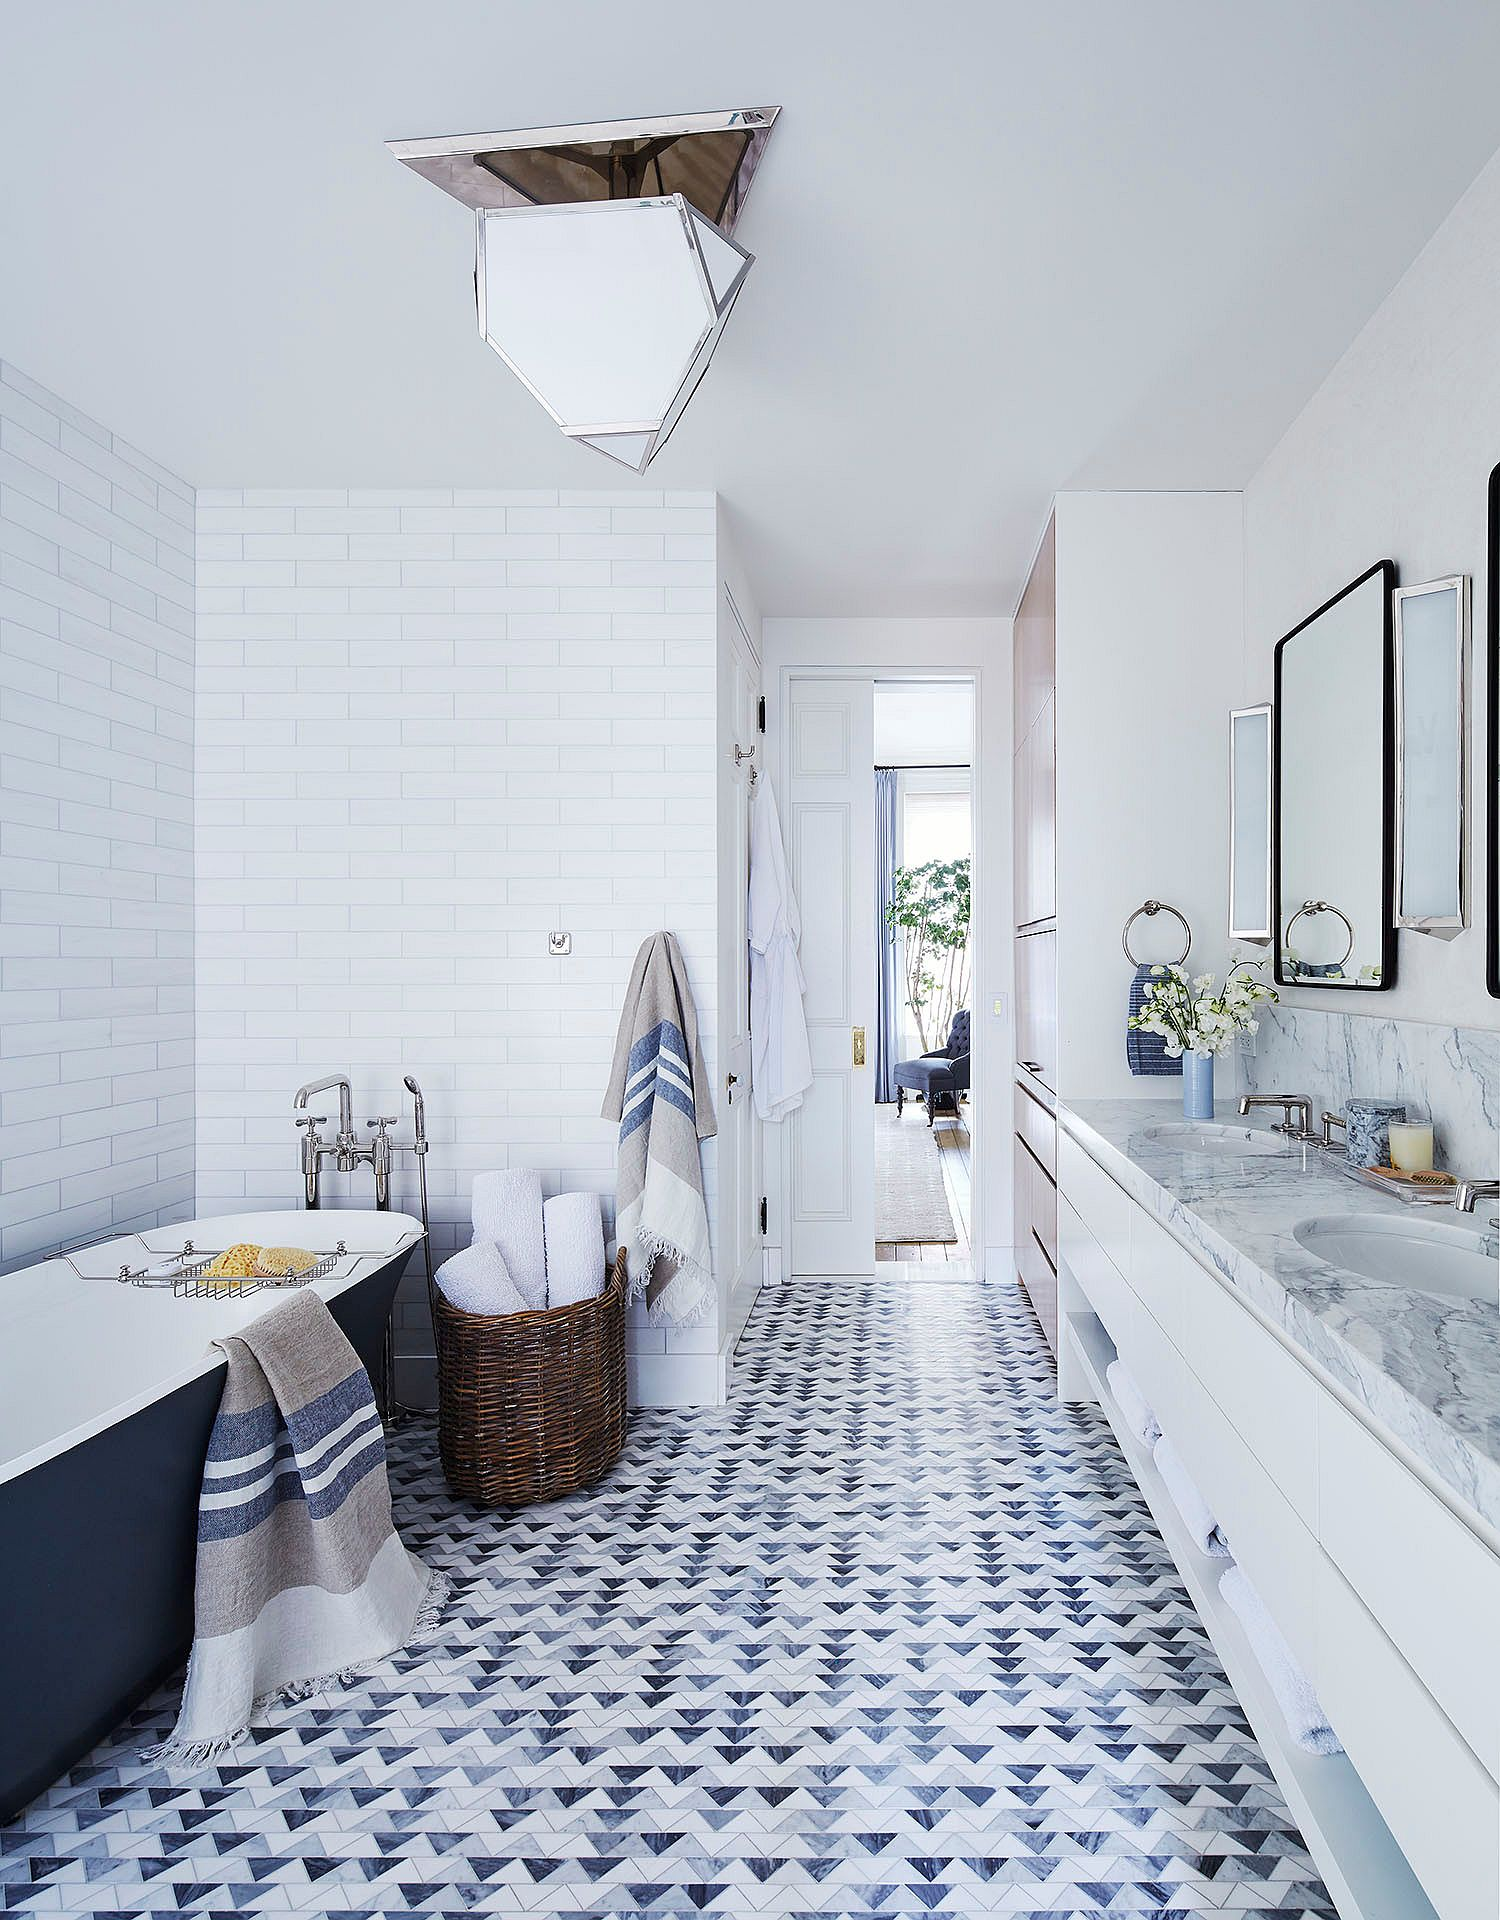 Bathtub adds both color and style to this contemporary bathroom